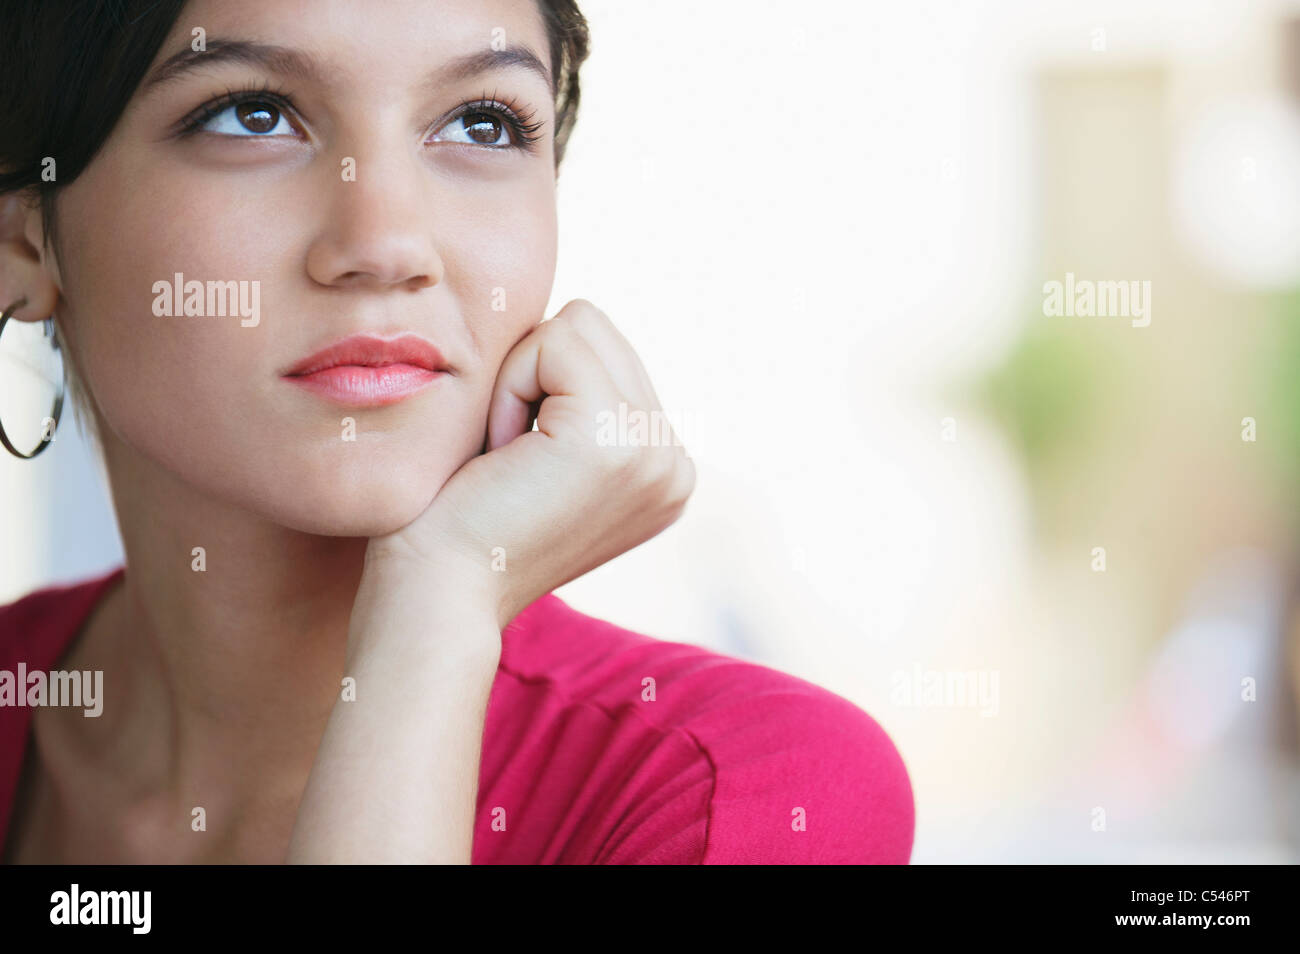 Contemplative woman looking away with hand on chin - Stock Image